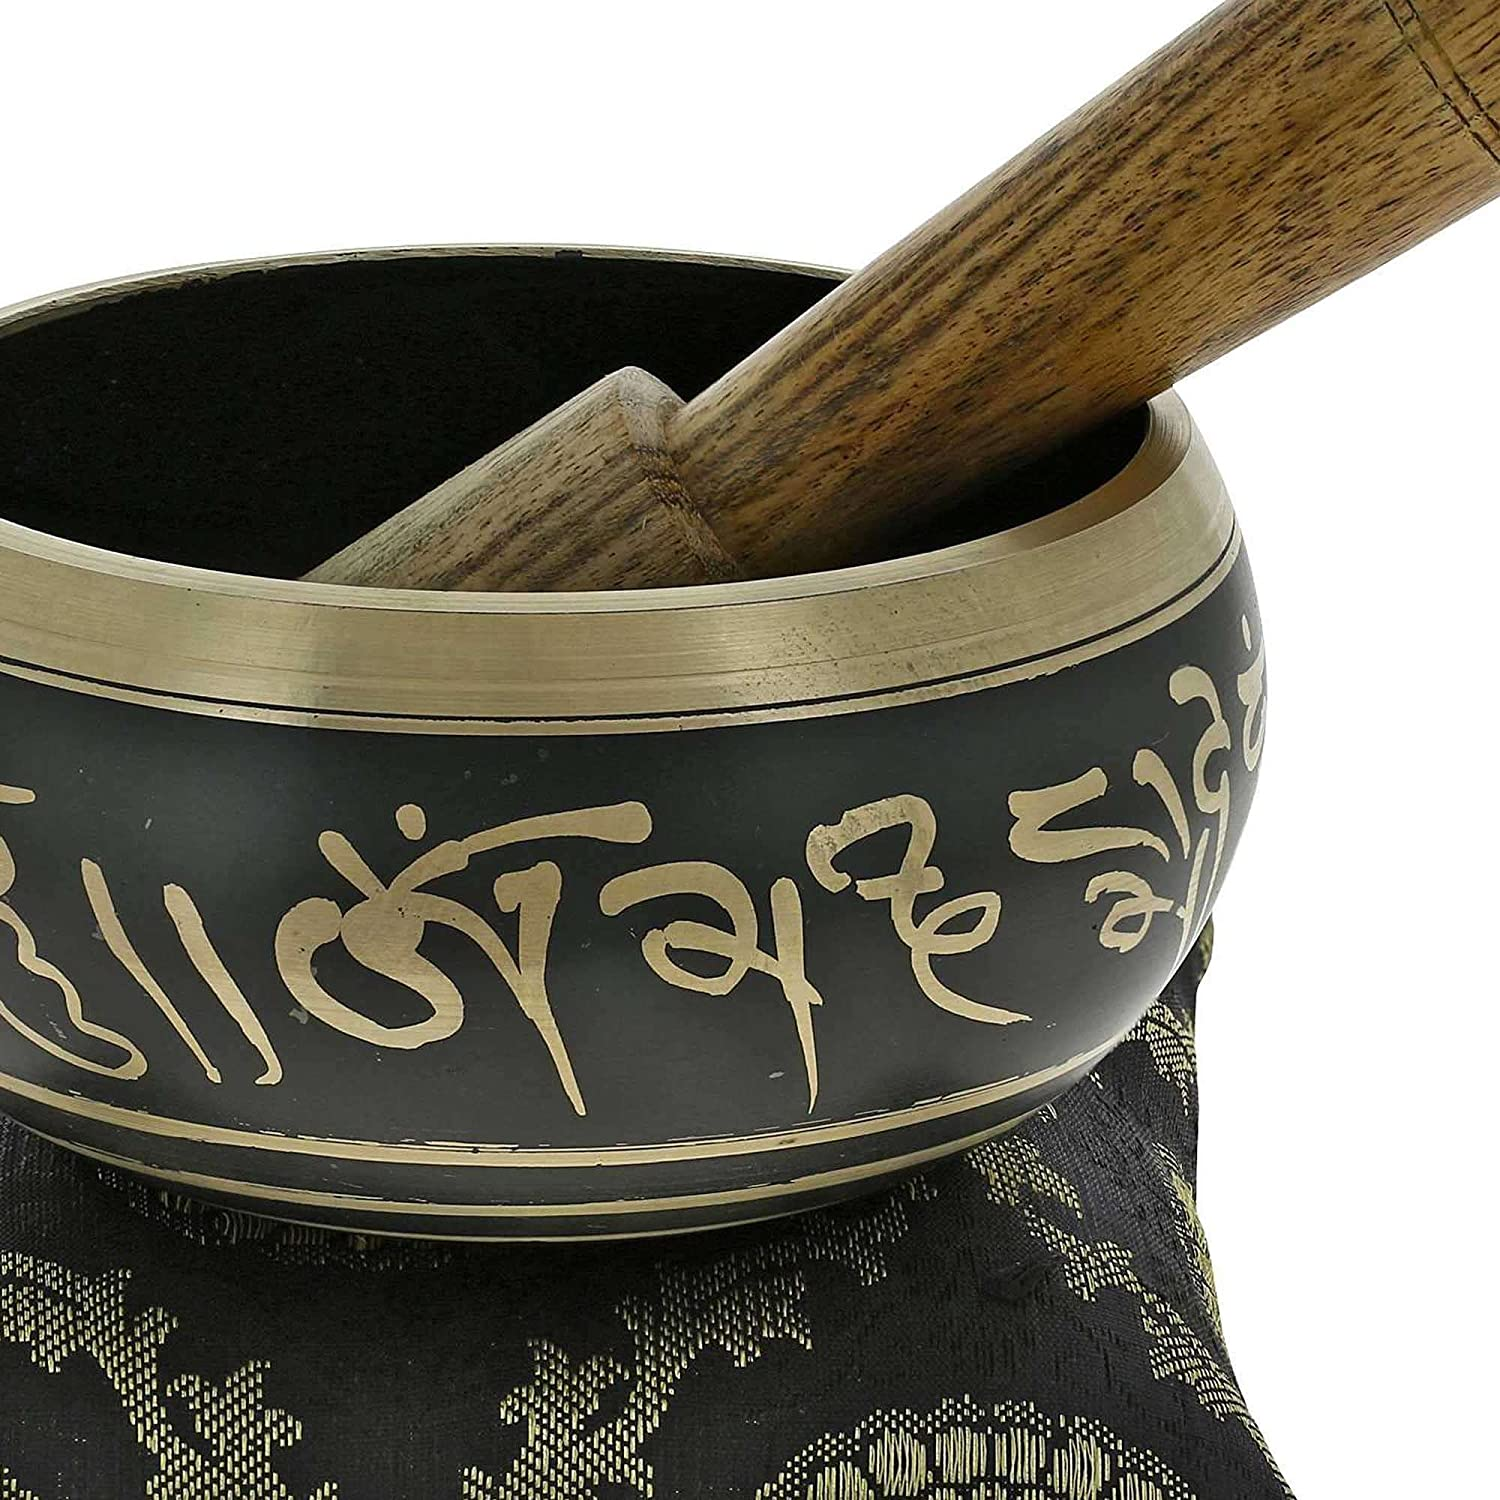 Buddhist Singing Bowl Meditation Tibetan Golden and Black Art Décor 4 Inch ShalinIndia MN-bowl_black_s